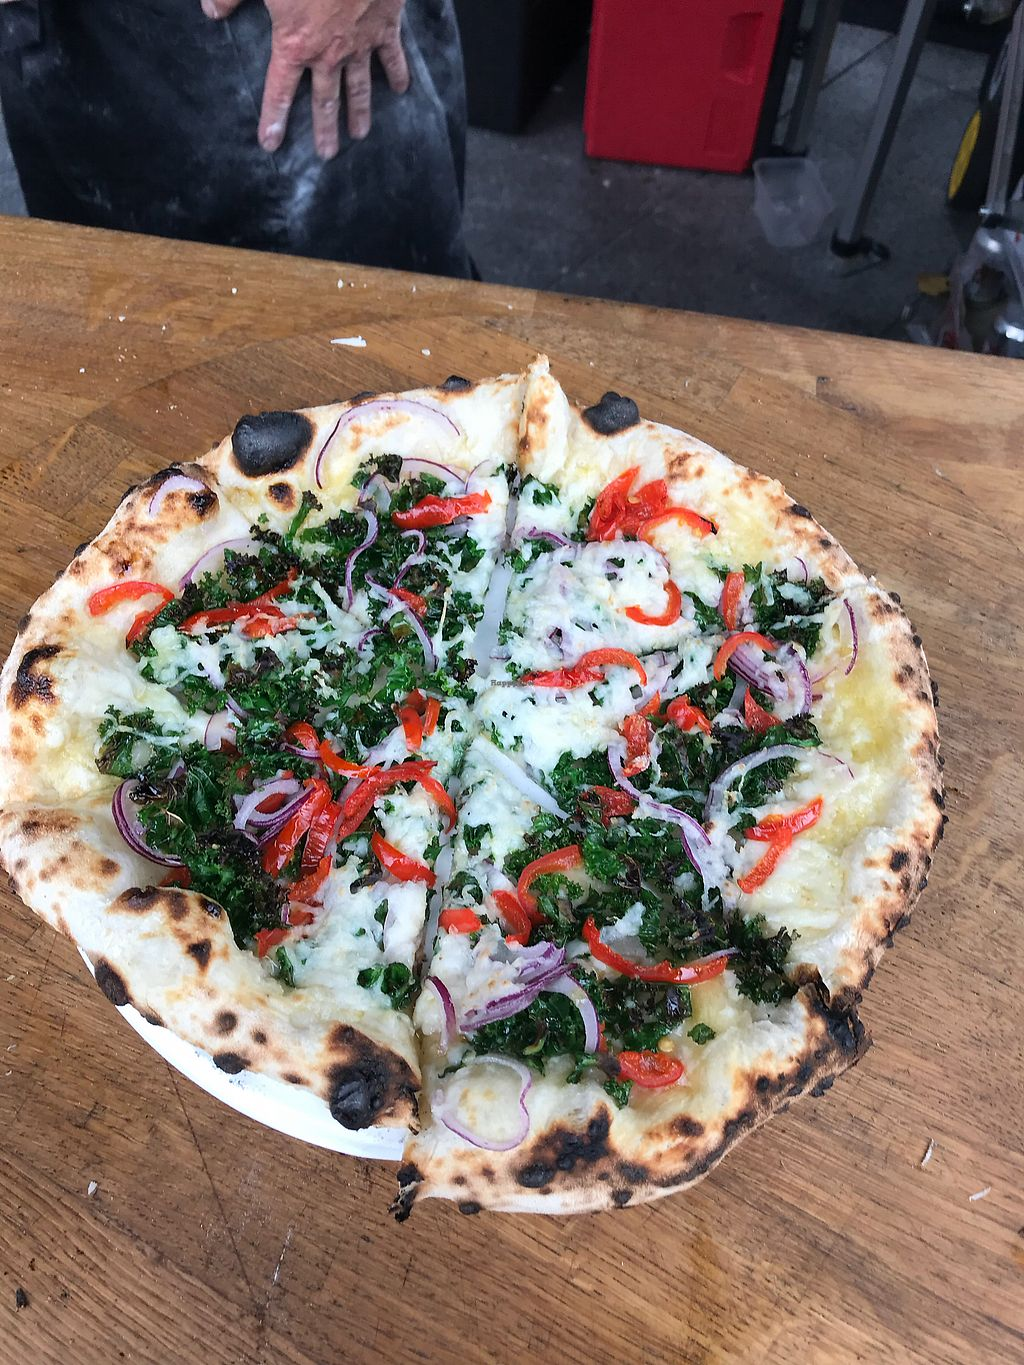 """Photo of Sneinton Vegan Market - Pop-up  by <a href=""""/members/profile/JuliaTrigg"""">JuliaTrigg</a> <br/>Mission pizza <br/> October 8, 2017  - <a href='/contact/abuse/image/71711/313164'>Report</a>"""